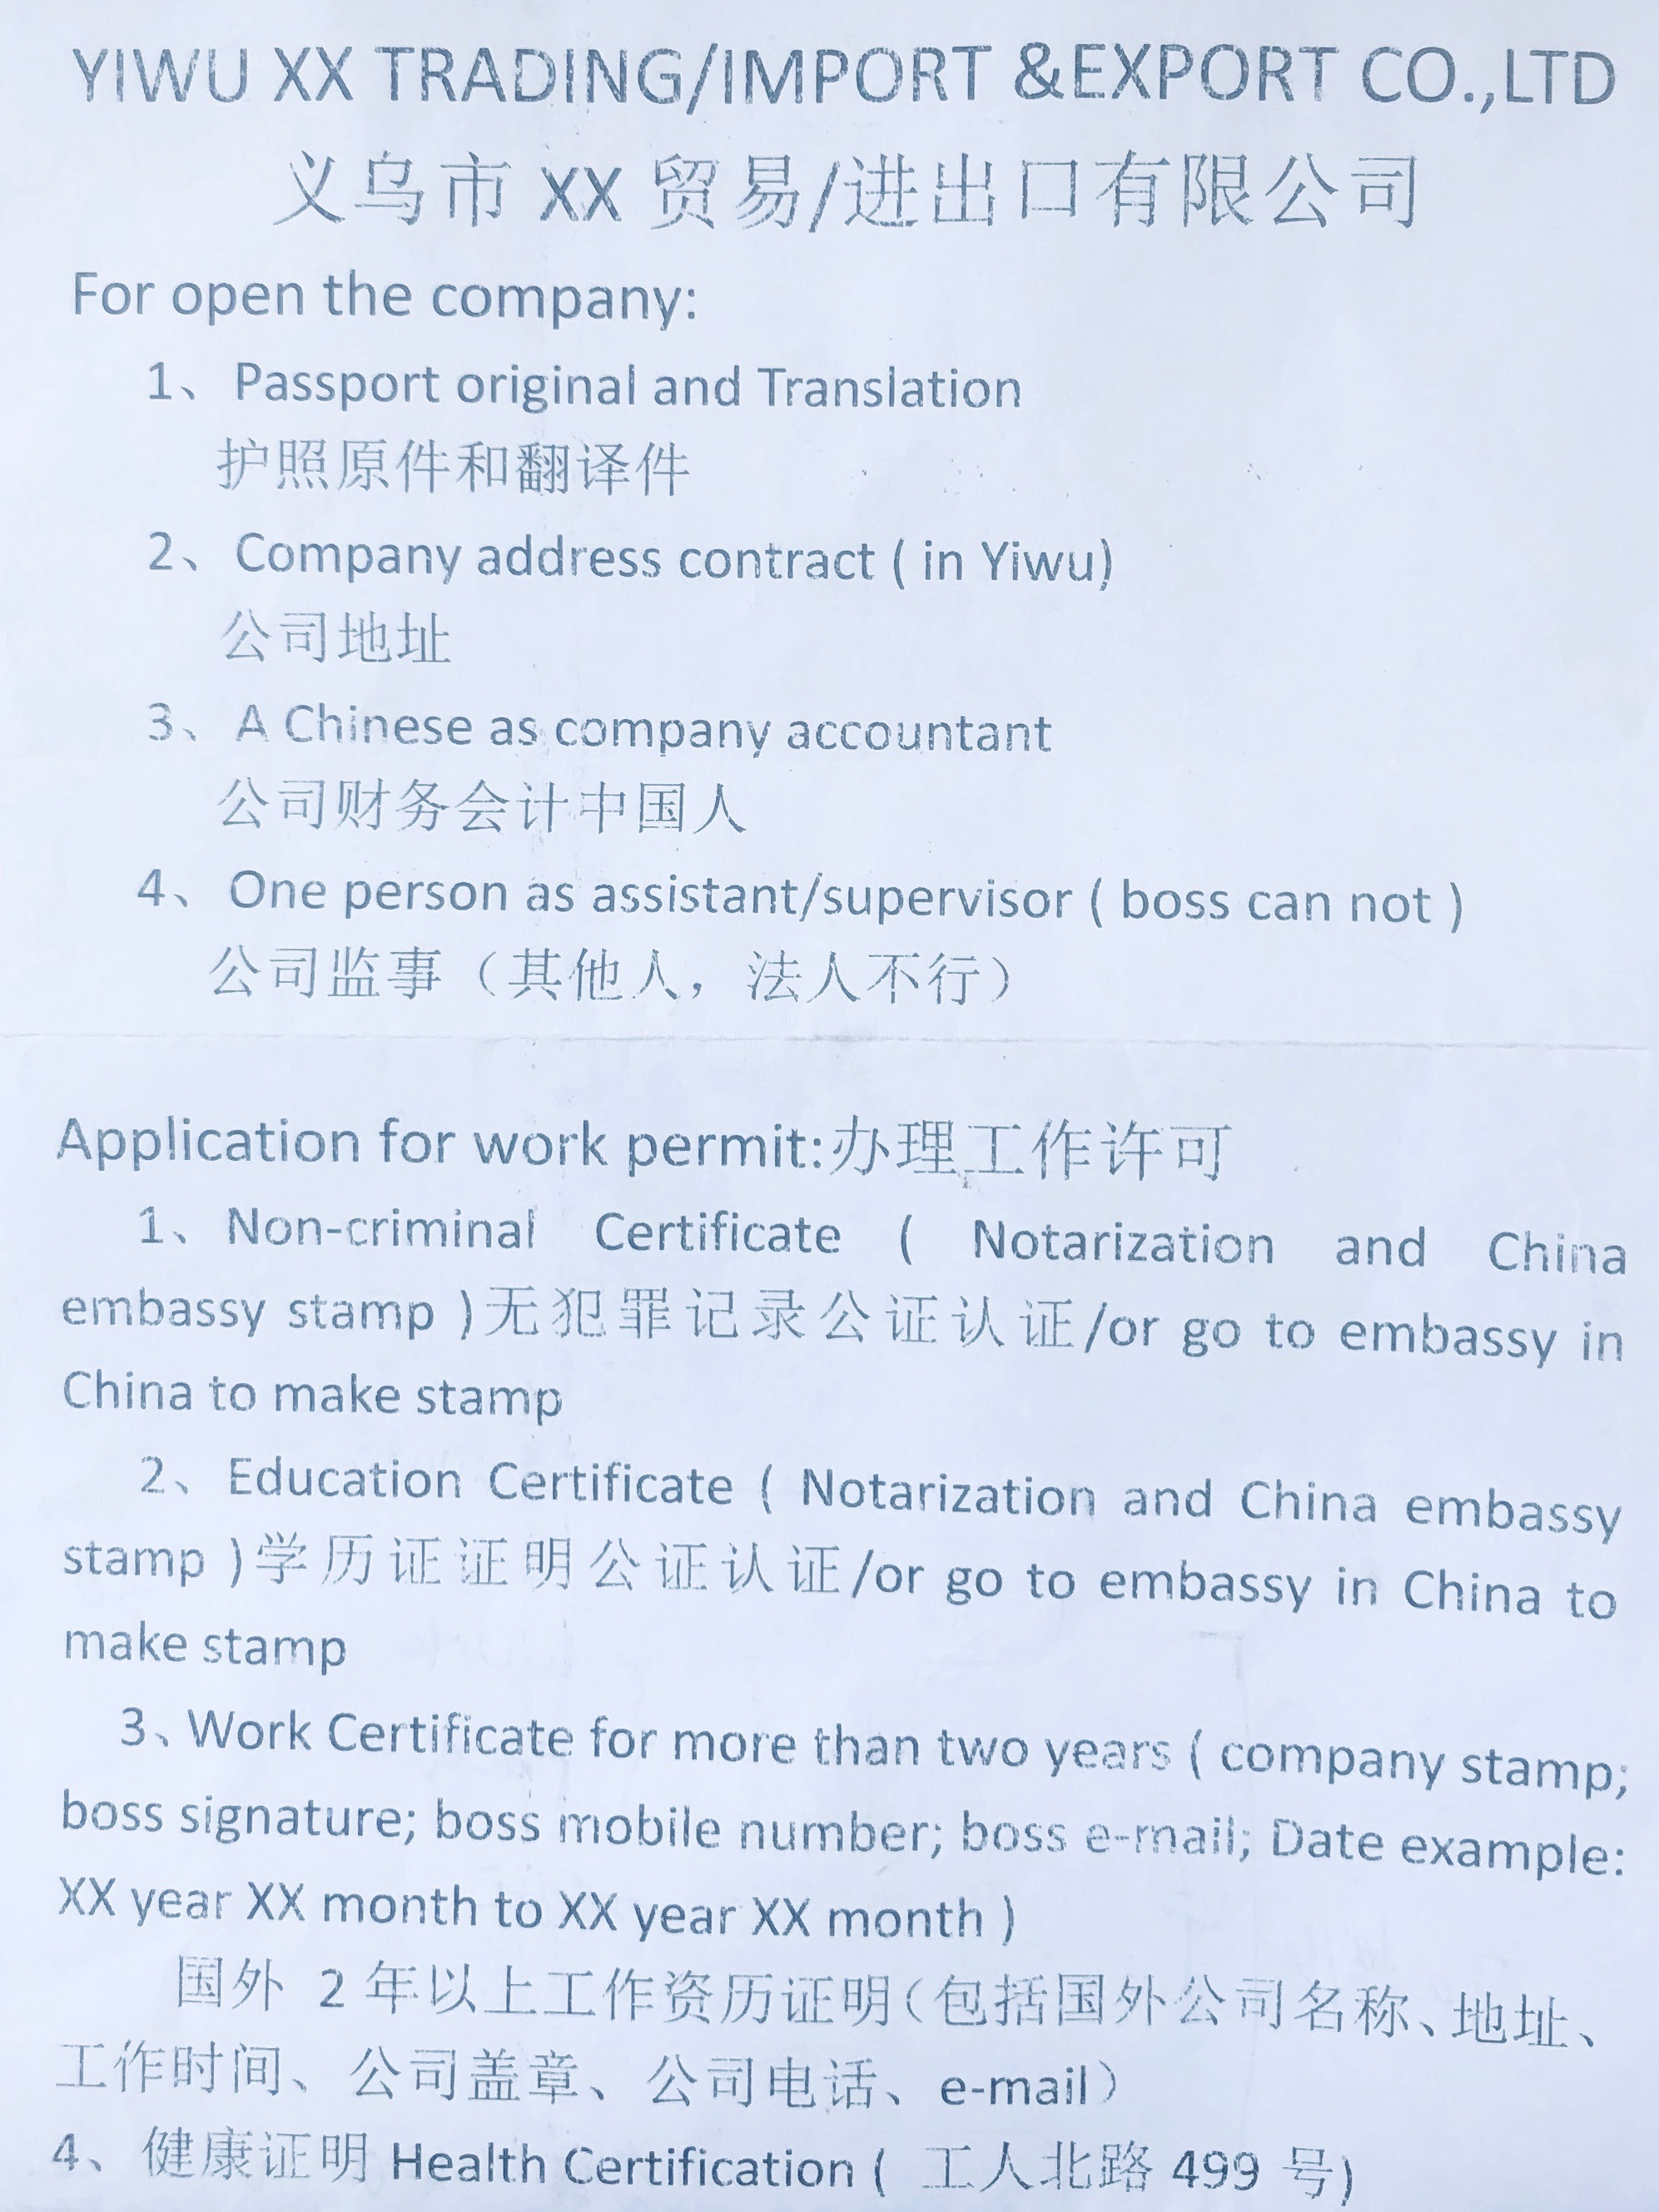 Requirements for open company and get work permit in Yiwu China